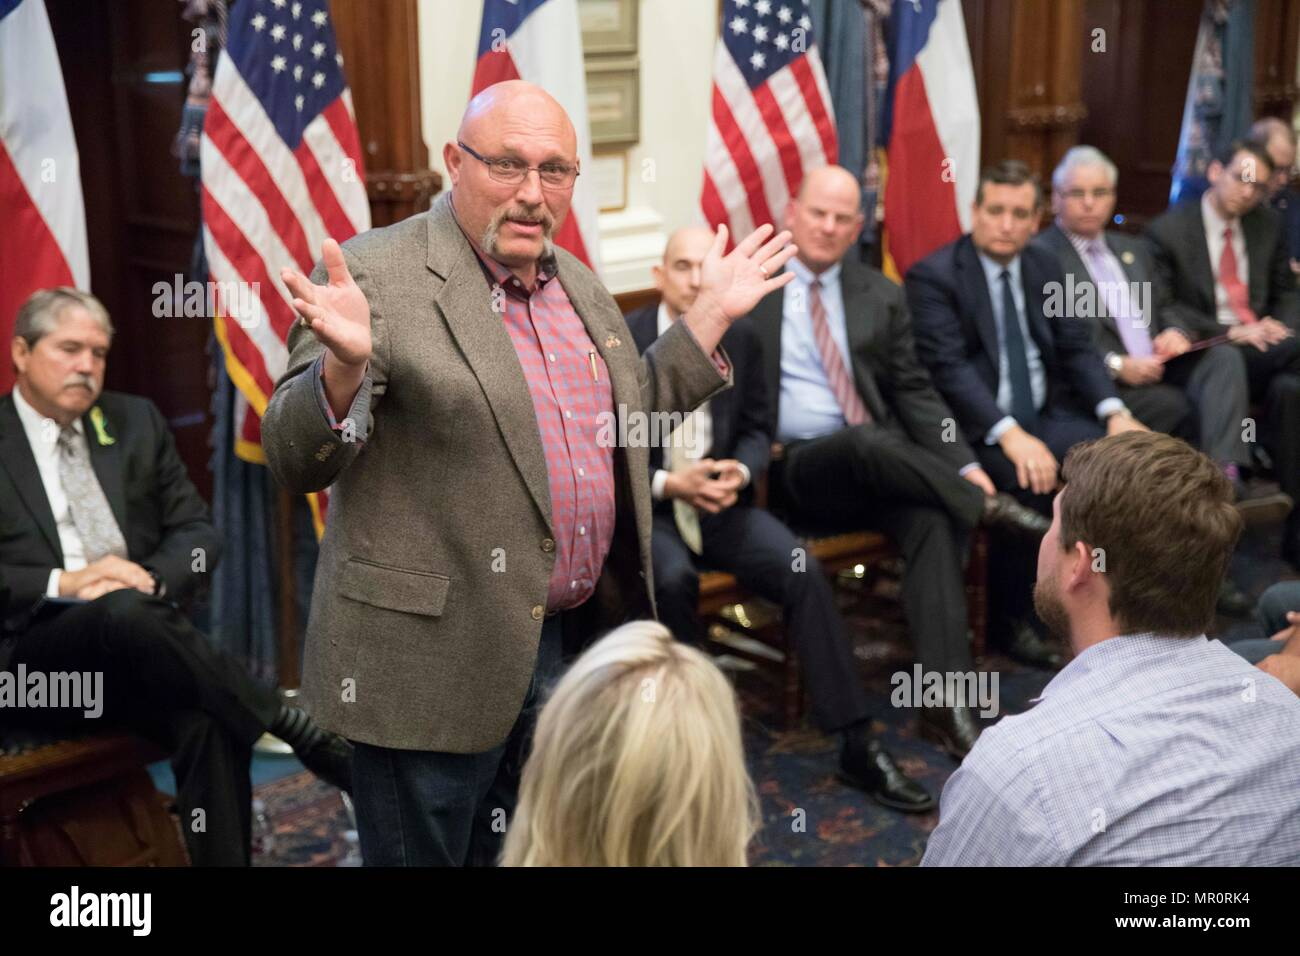 Austin Texas Usa May 24 2018 Sutherland Springs Pastor Frank